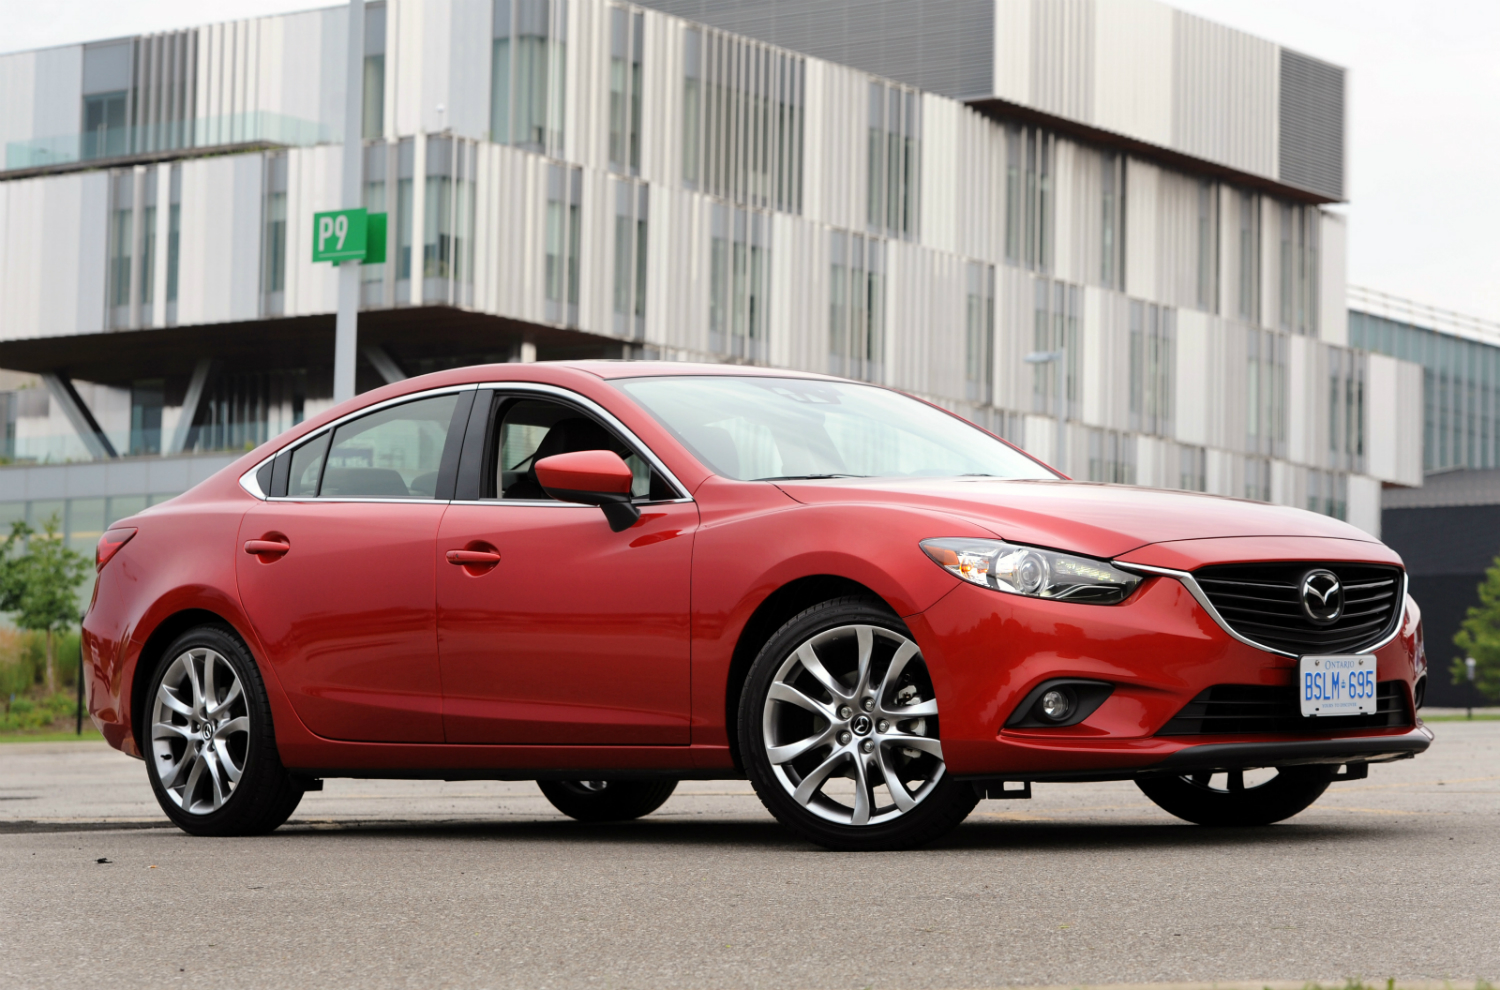 2015 mazda 6 gt i eloop review. Black Bedroom Furniture Sets. Home Design Ideas